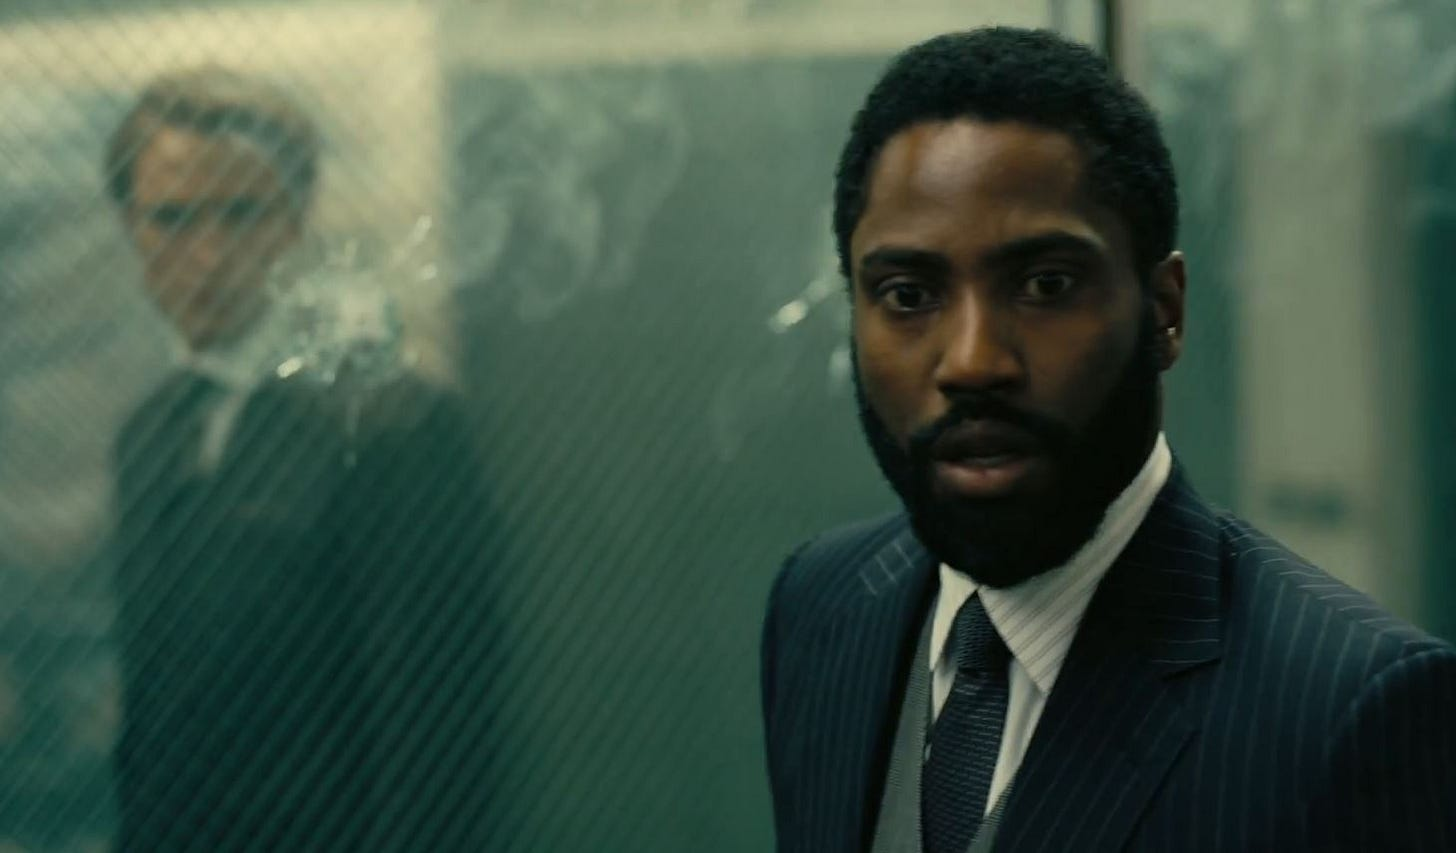 John David Washington in Tenet standing in front of a window with a bullet hole. On the other side of the glass is Robert Pattinson, watching him.